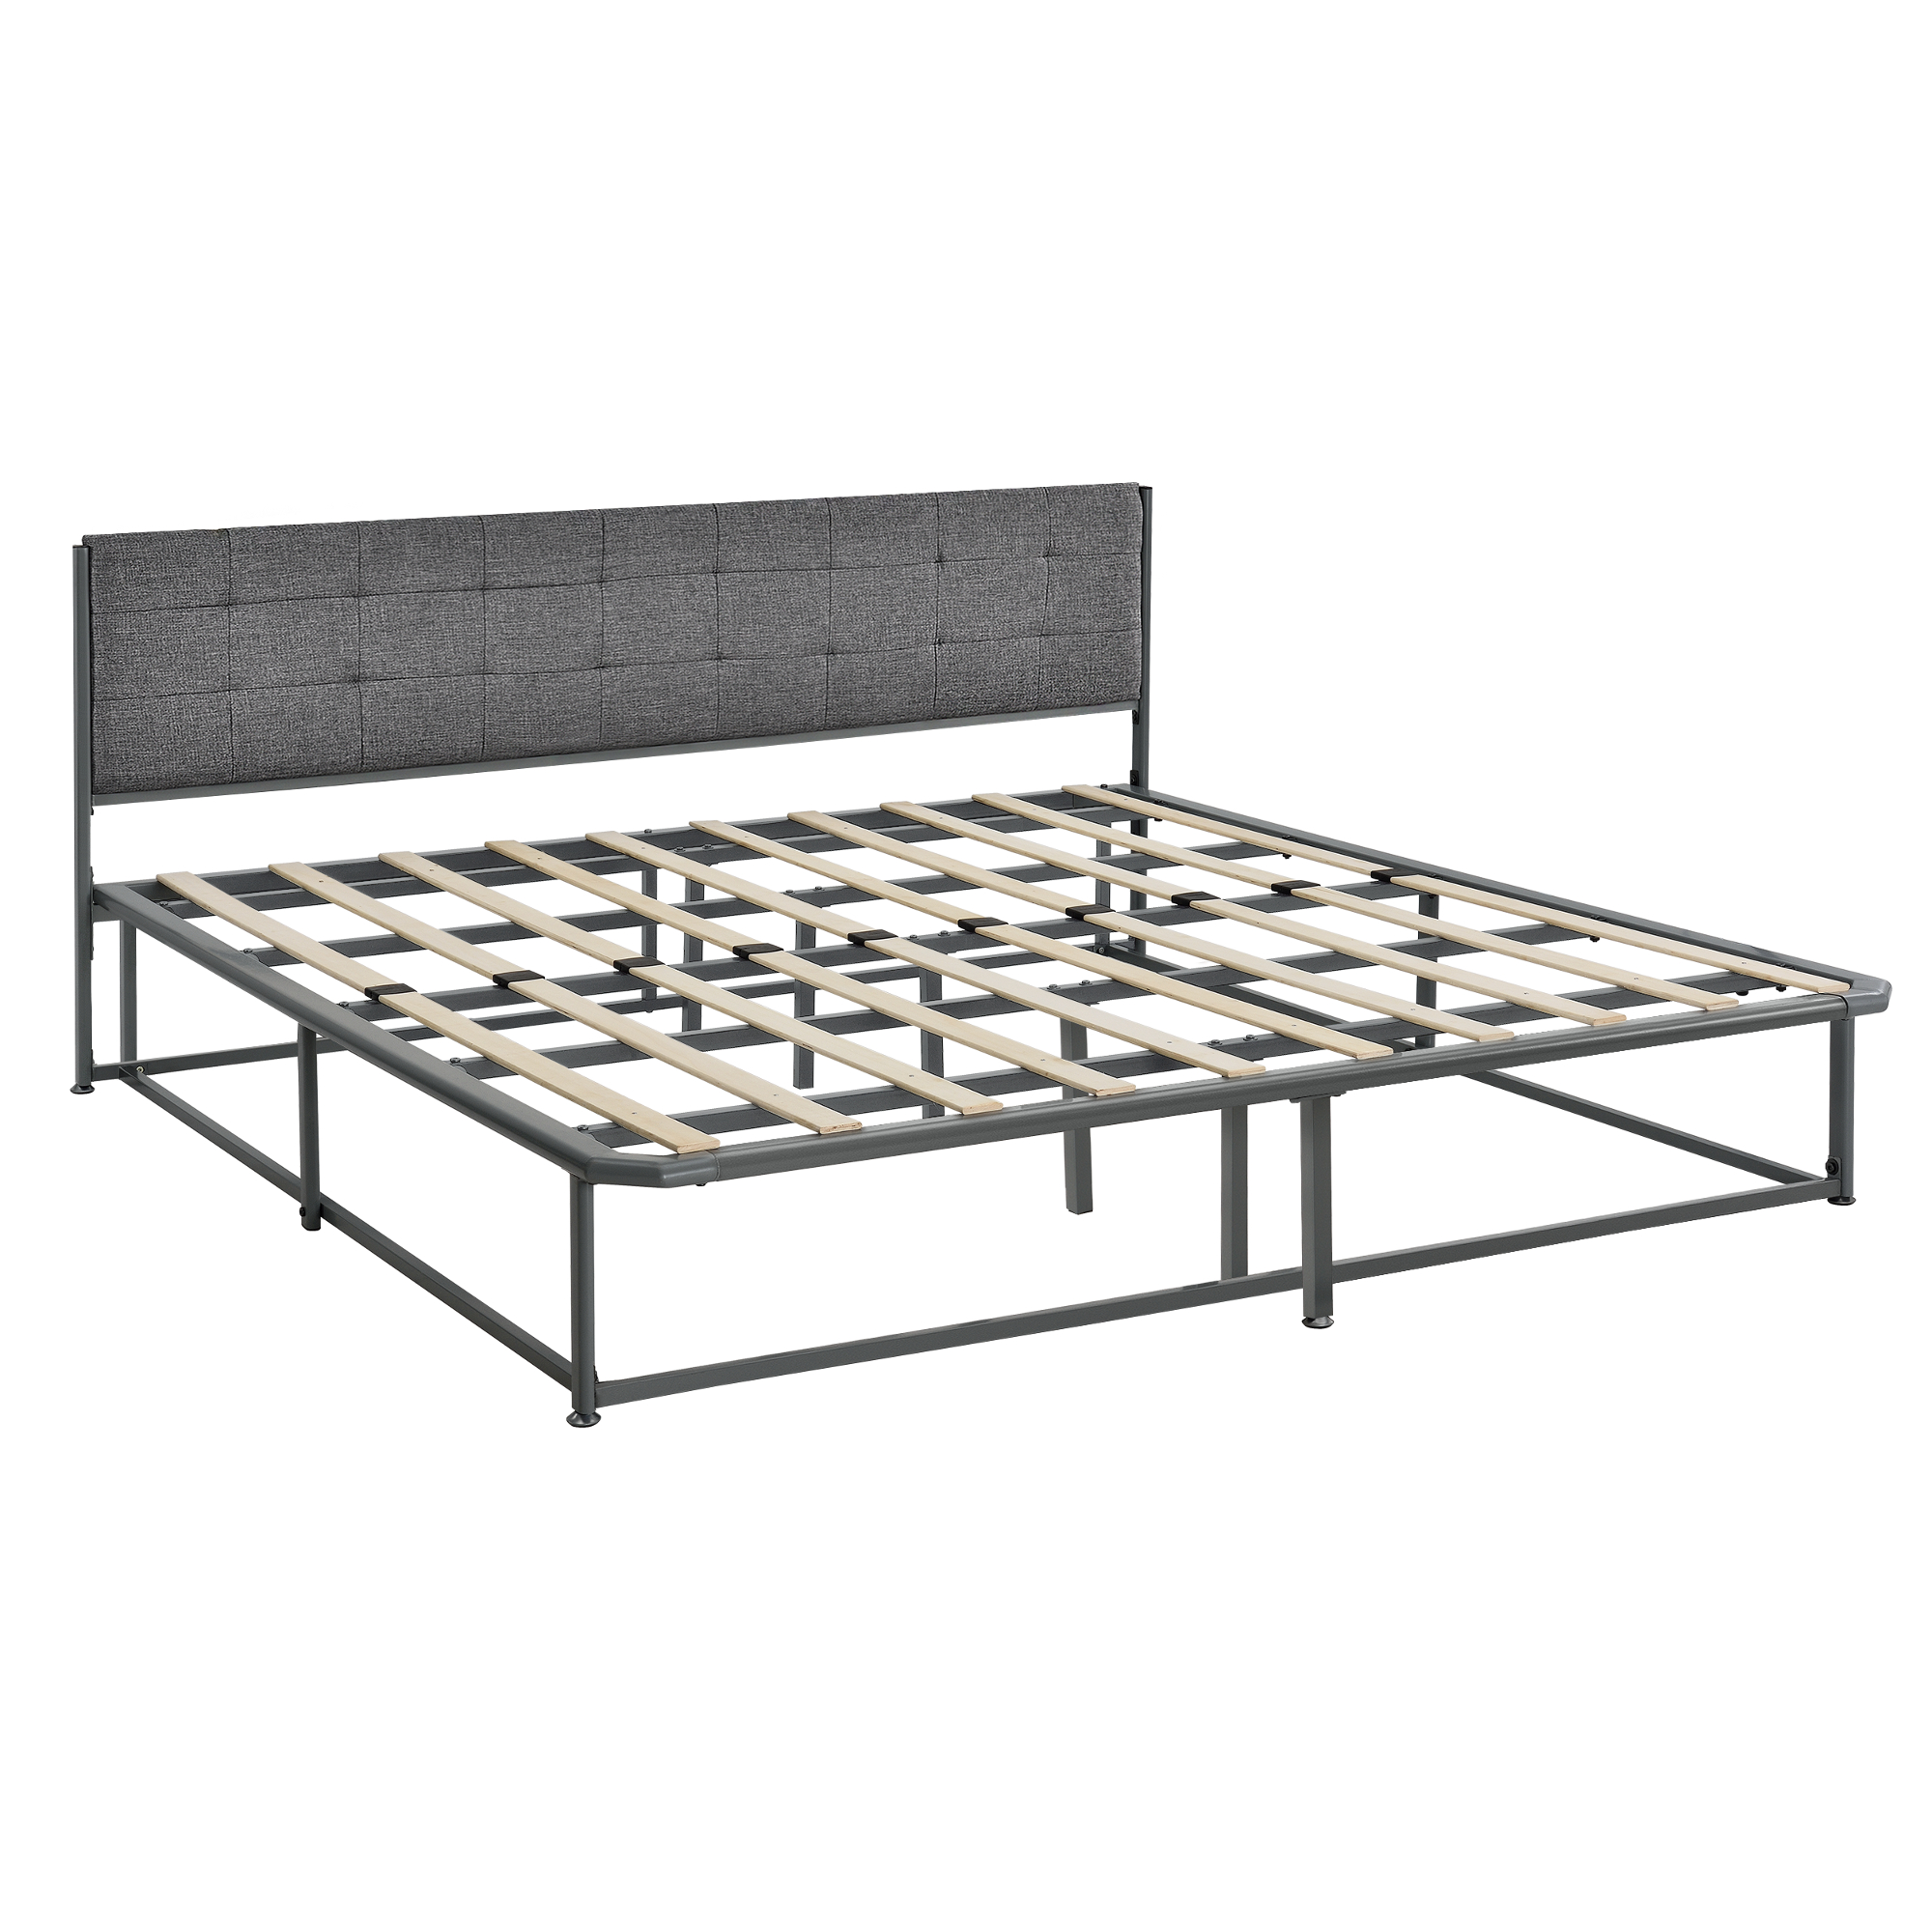 metal betten bettgestell 180x200 metall double metal bed frame king metall bett 140 x 200. Black Bedroom Furniture Sets. Home Design Ideas